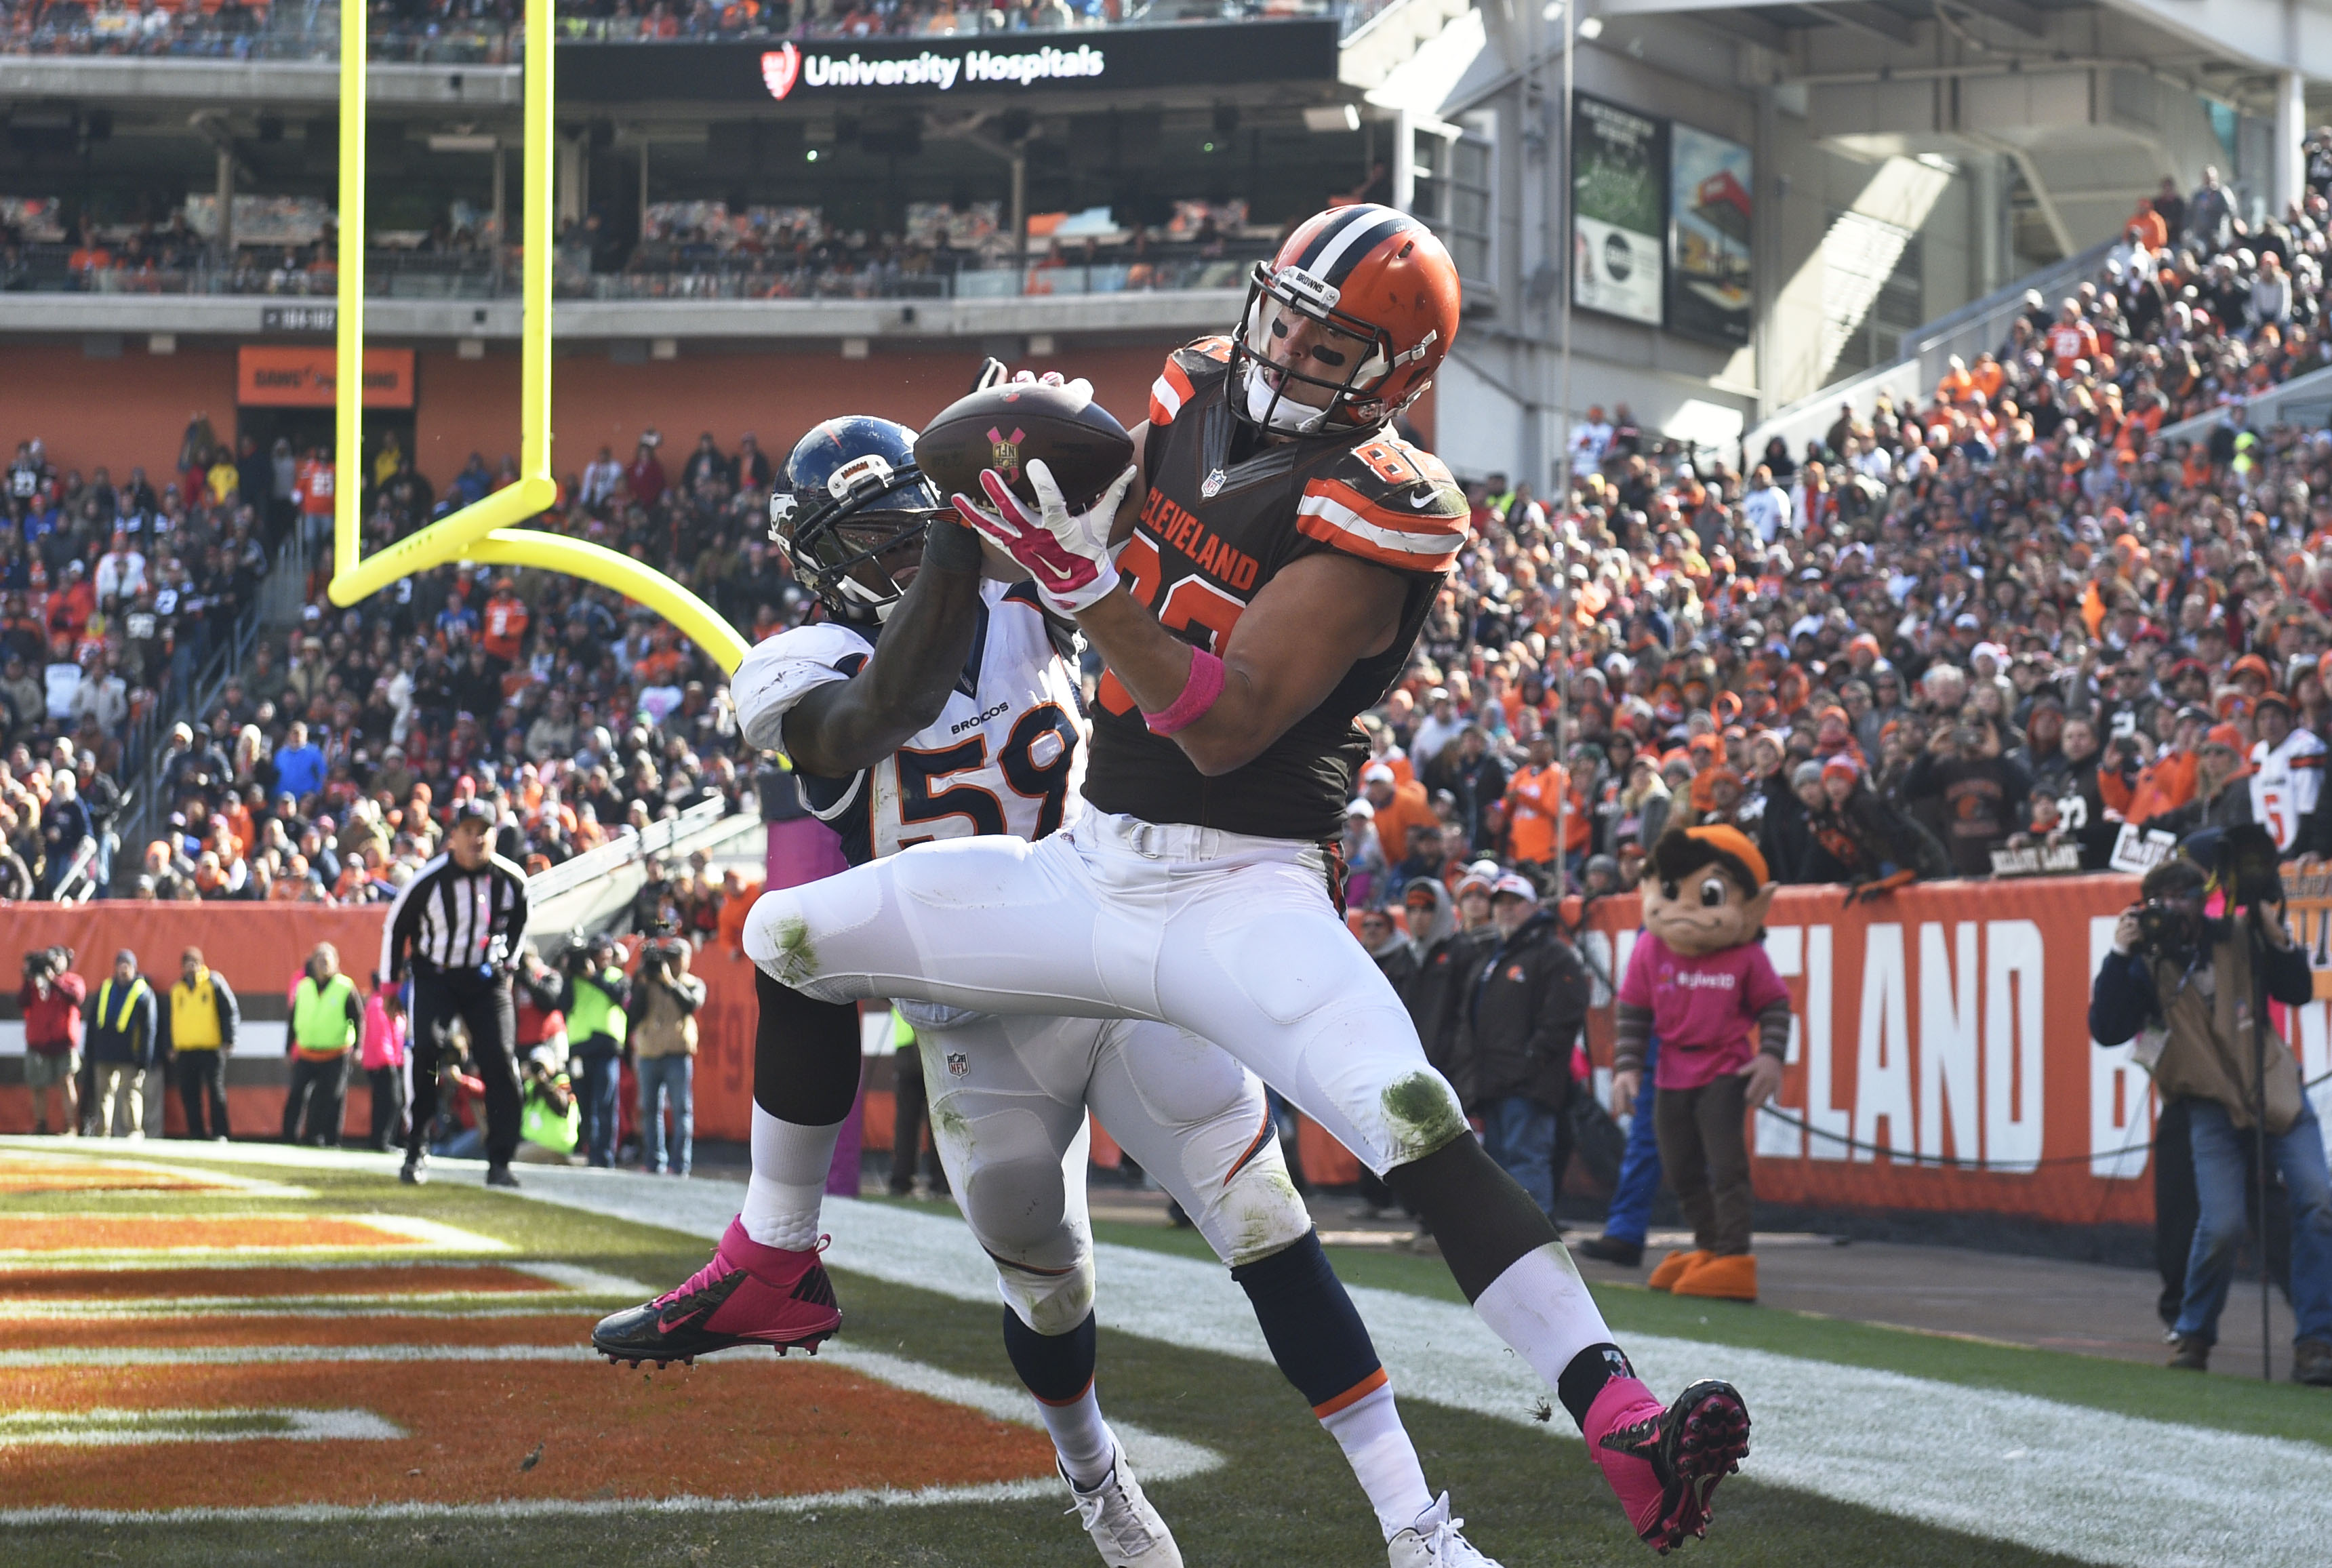 Oct 18, 2015; Cleveland, OH, USA; Cleveland Browns tight end Gary Barnidge (82) catches a touchdown pass as Denver Broncos inside linebacker Danny Trevathan (59) defends in the third quarter at FirstEnergy Stadium. Mandatory Credit: James Lang-USA TODAY Sports ORG XMIT: USATSI-224614 ORIG FILE ID: 20151017_jtl_sj8_181.JPG